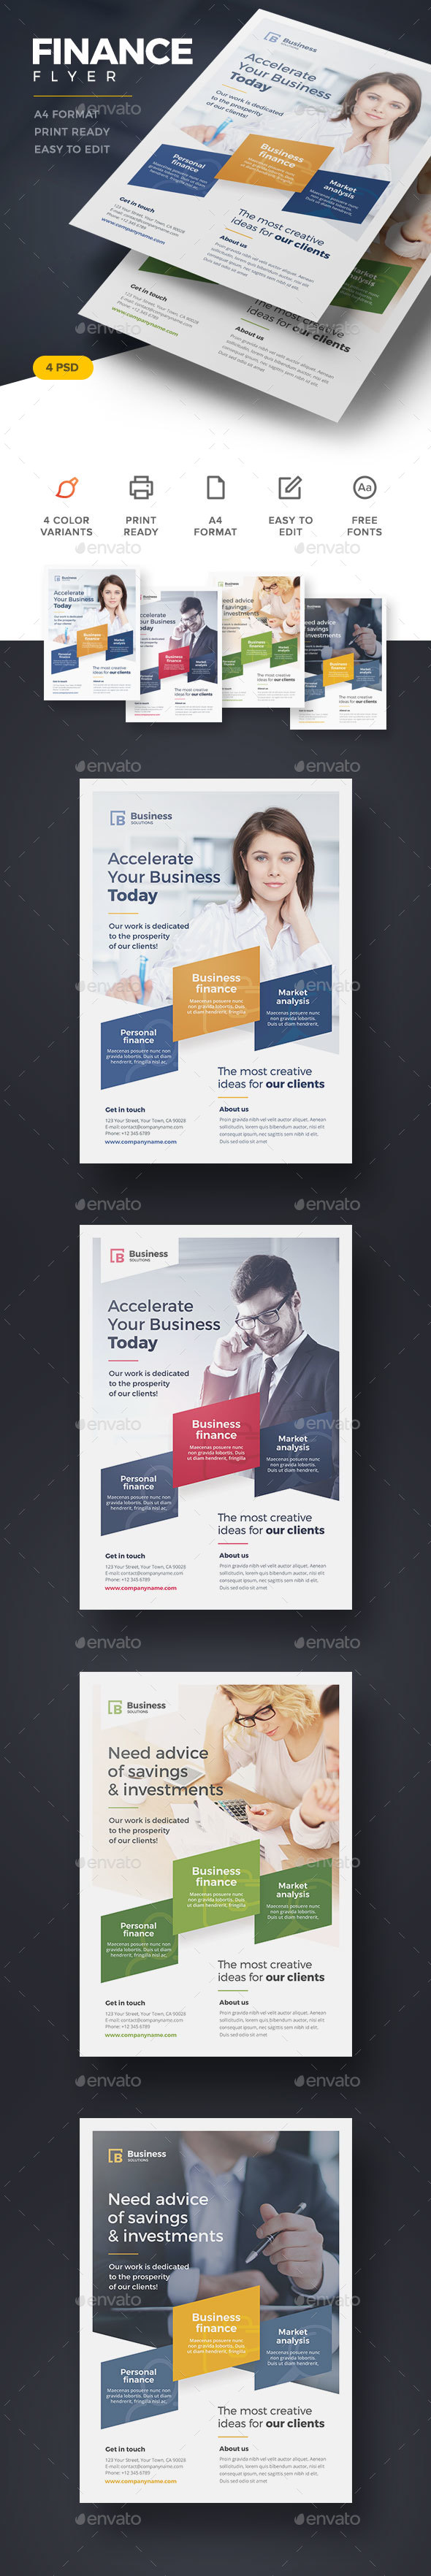 Finance Flyer - Corporate Flyers